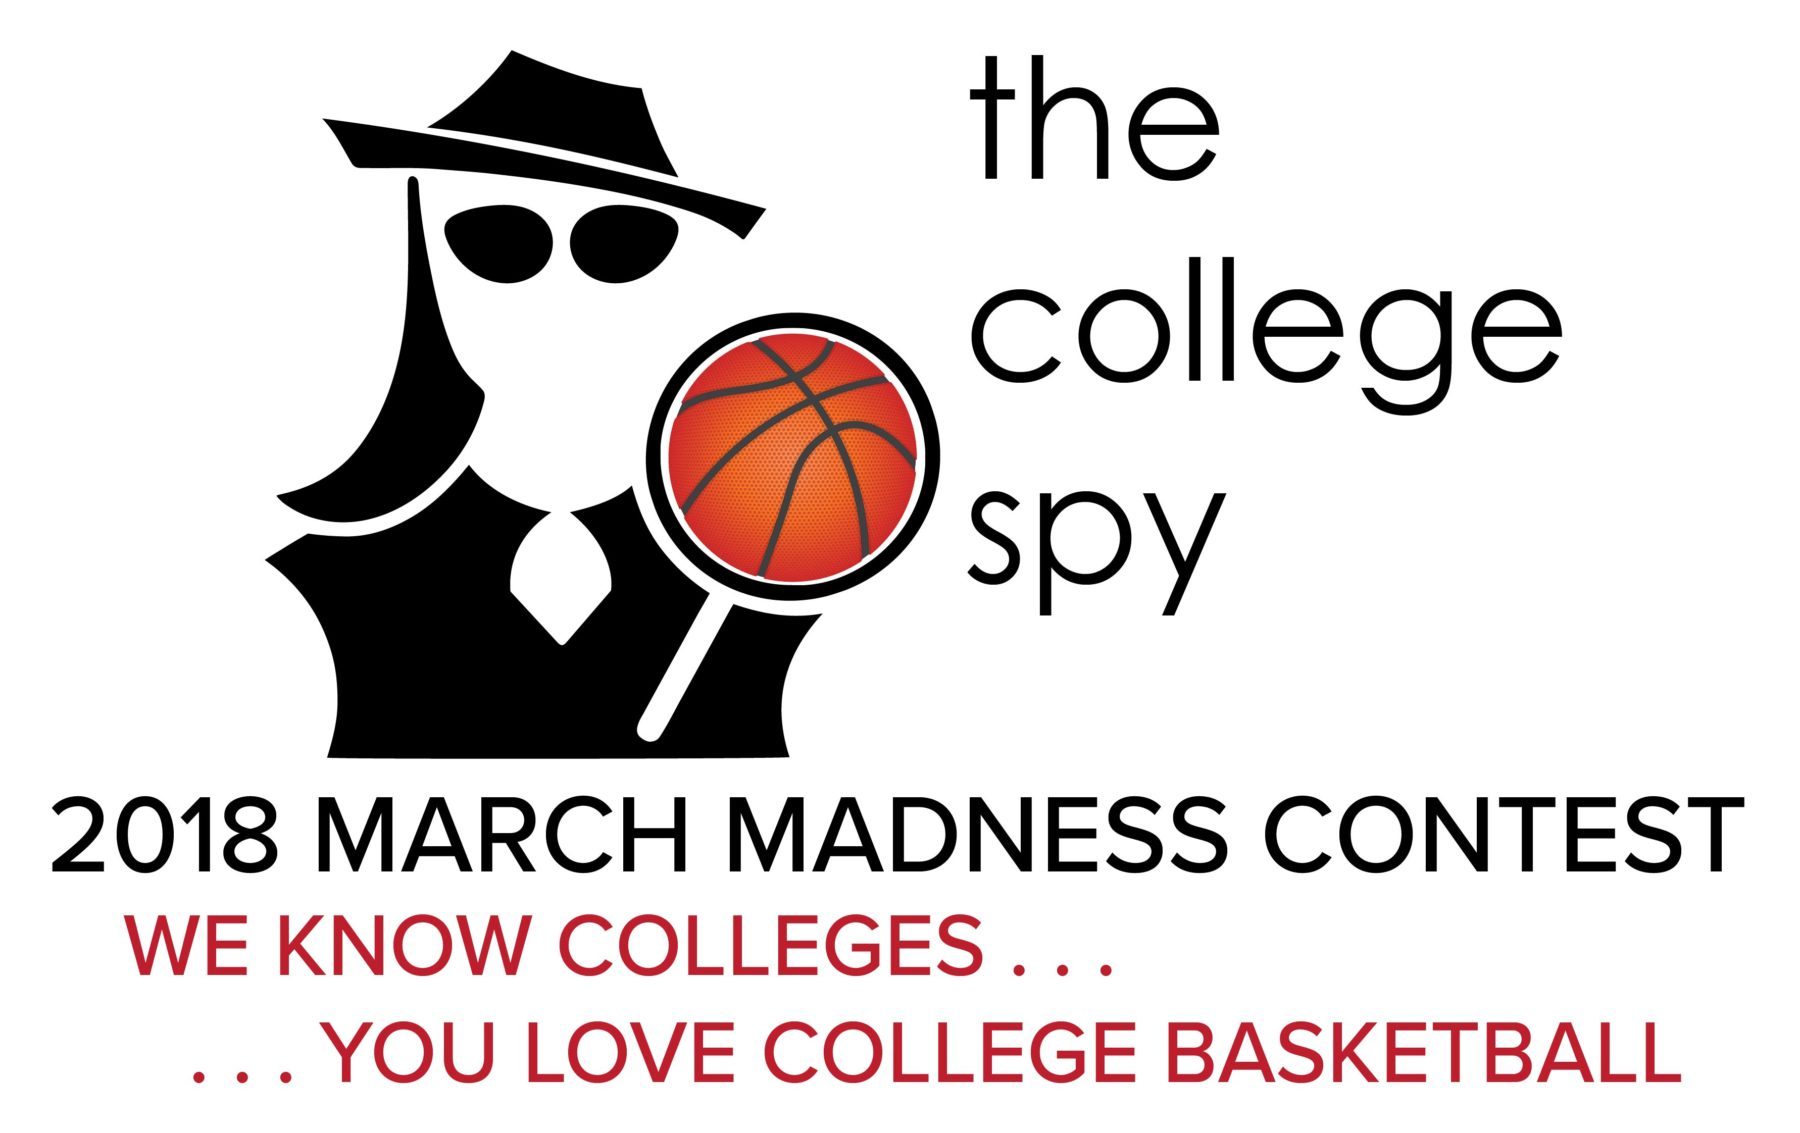 essays on march madness The cord cutter's guide to watching march madness basketball watch the national championship on tbs for free start watching live in under 10 minutes.